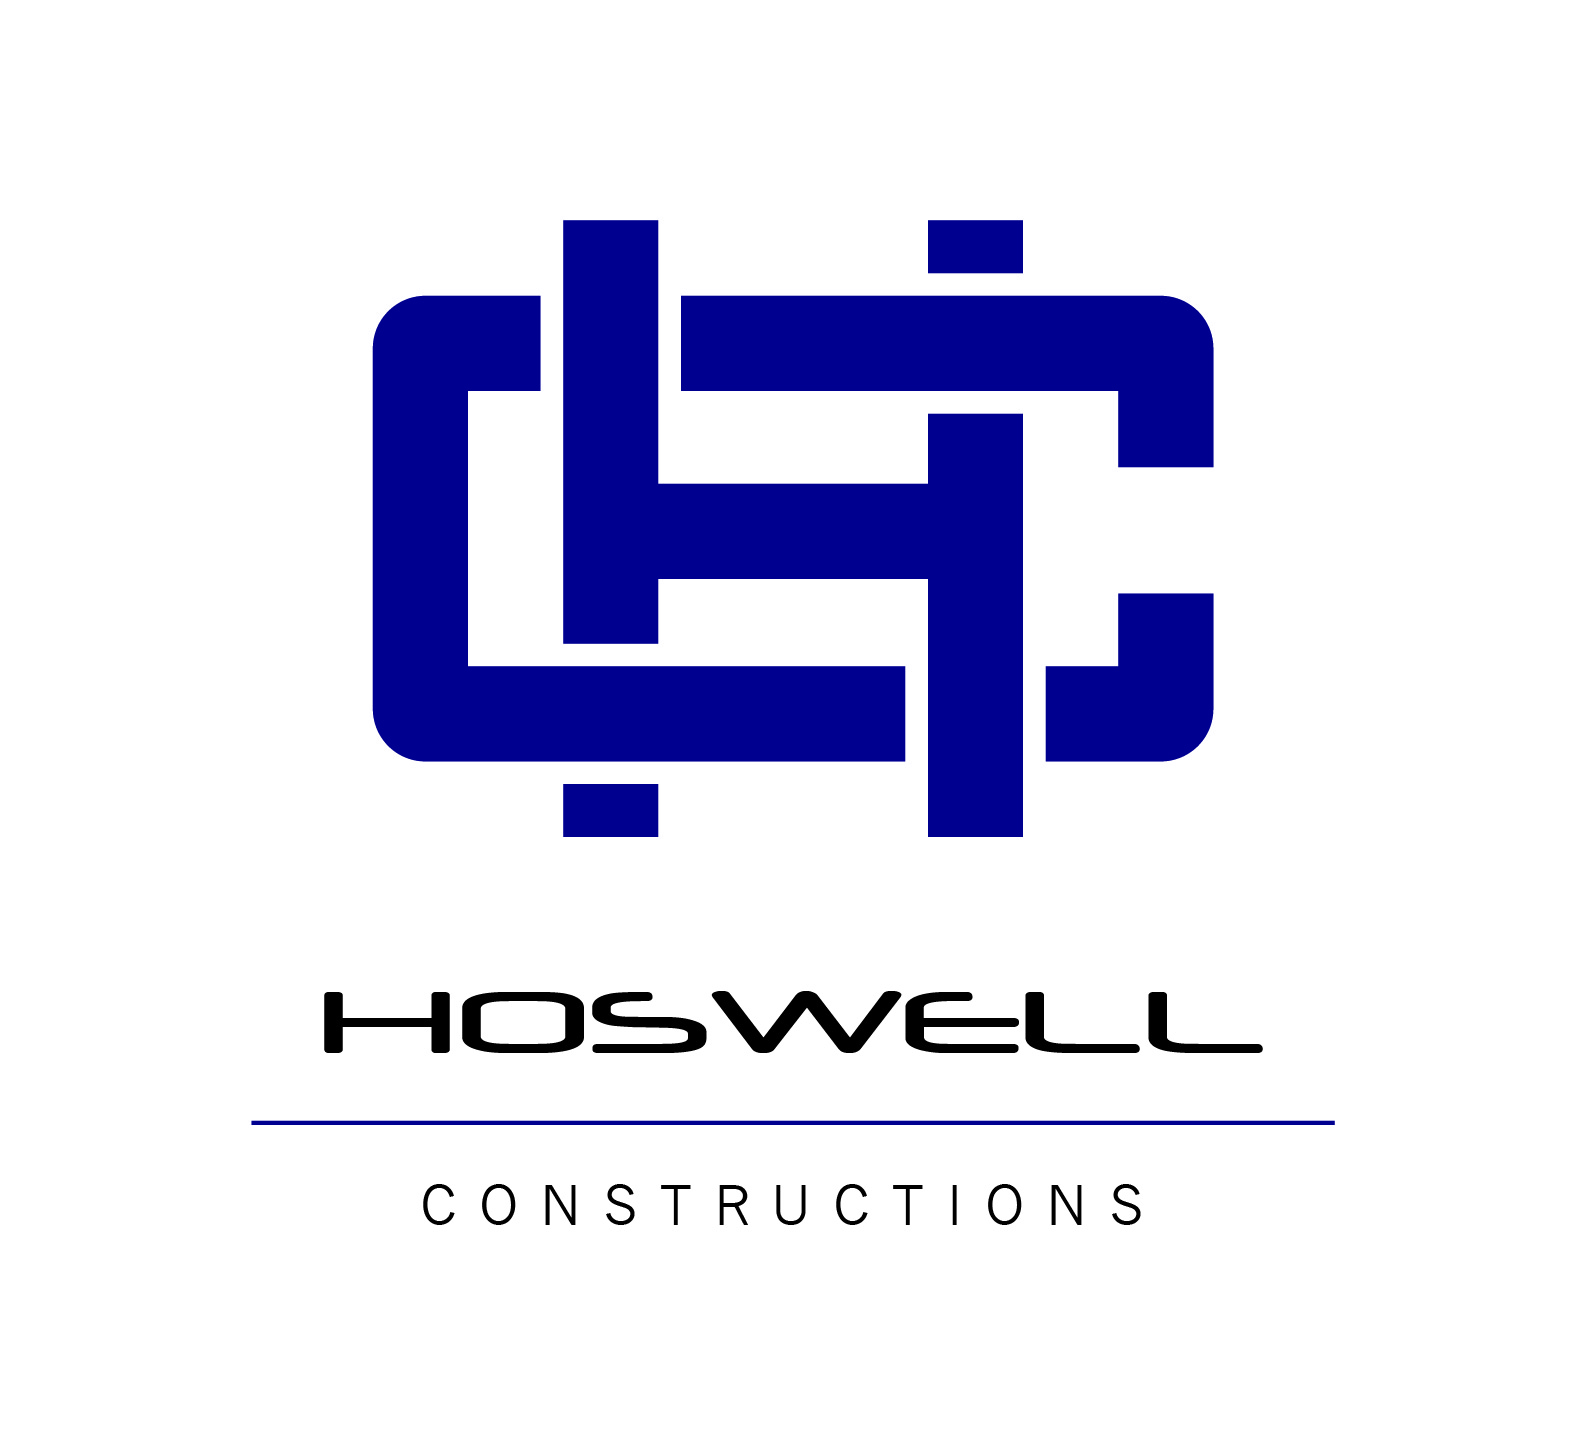 Hoswell Constructions